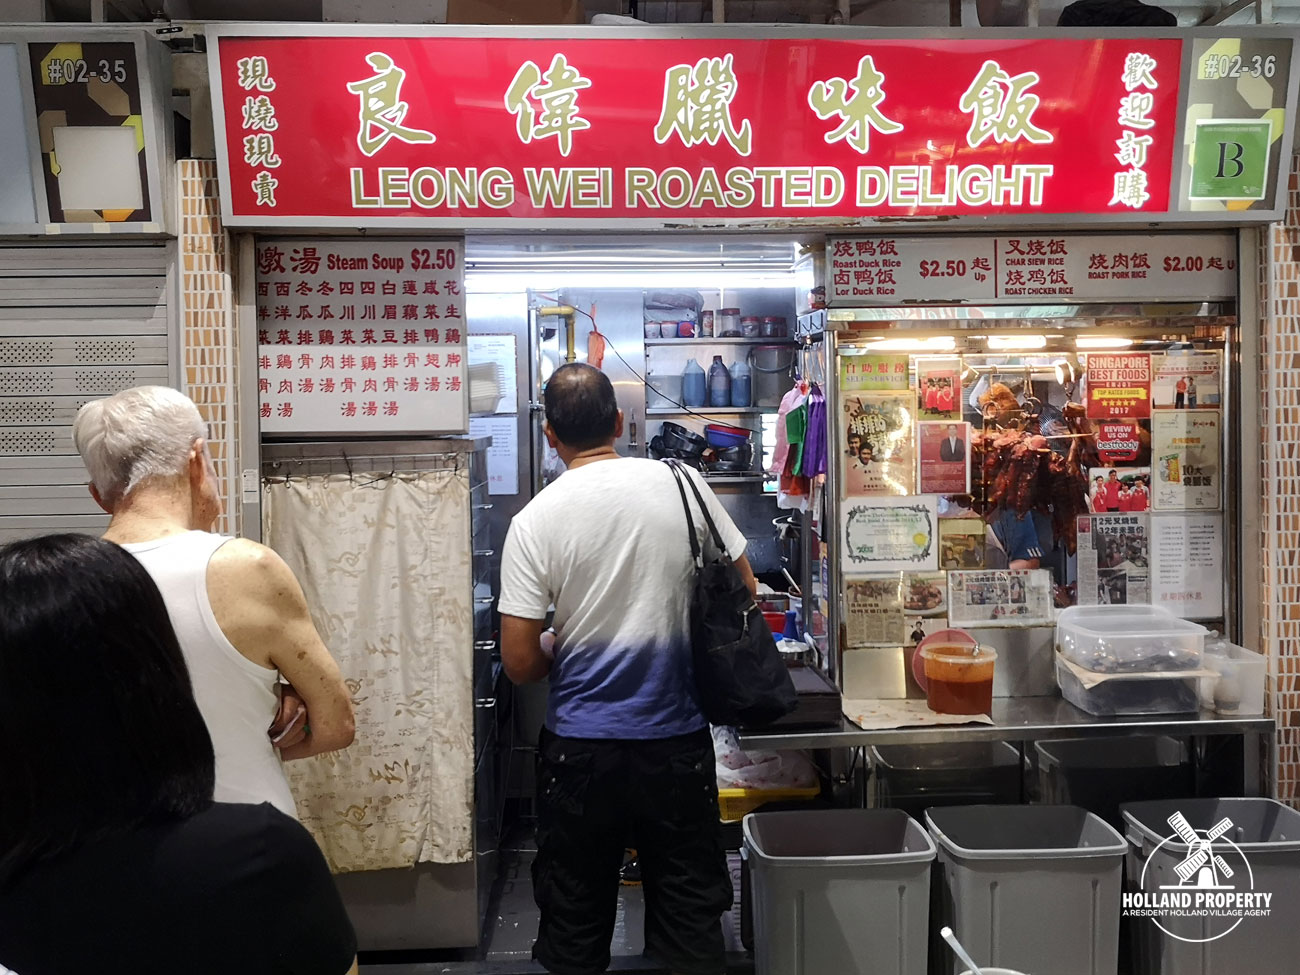 leong wai roasted delight